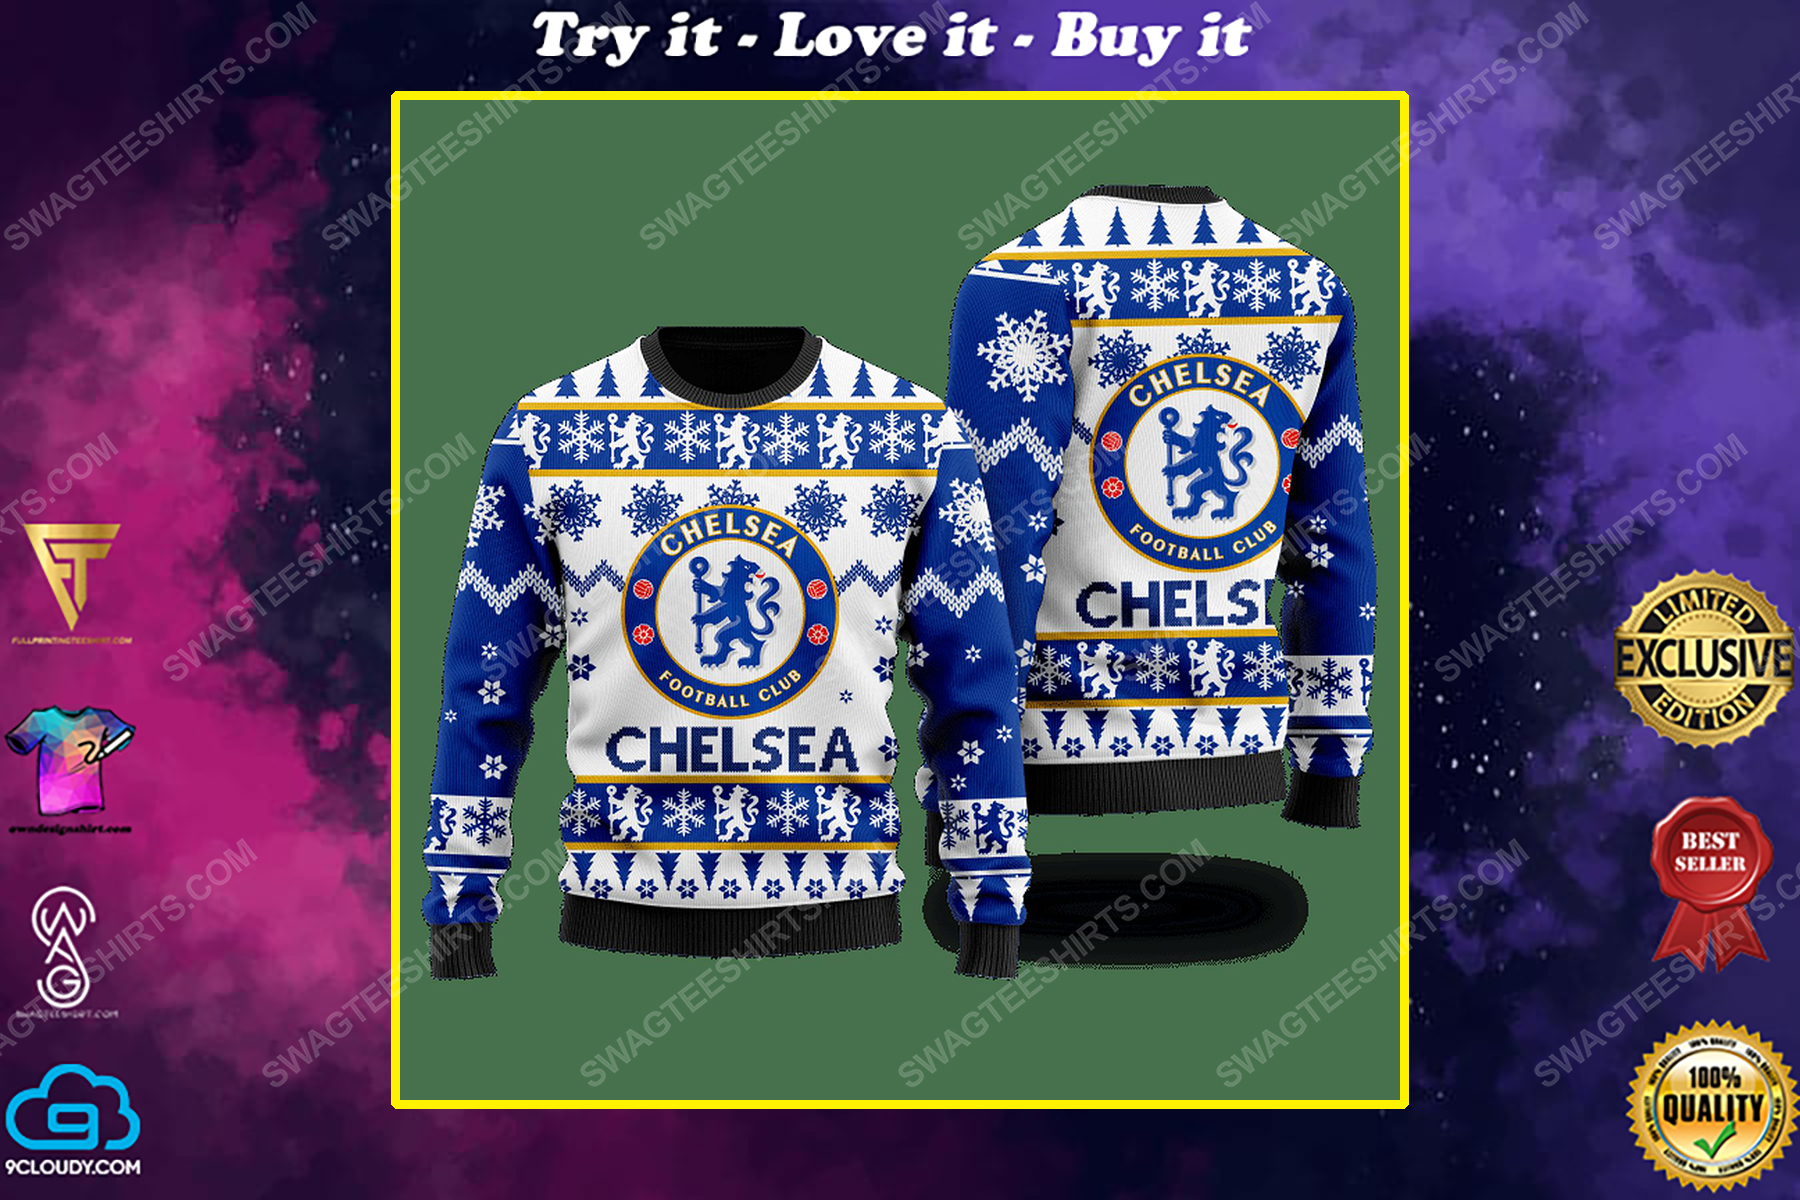 Chelsea football club ugly christmas sweater 1